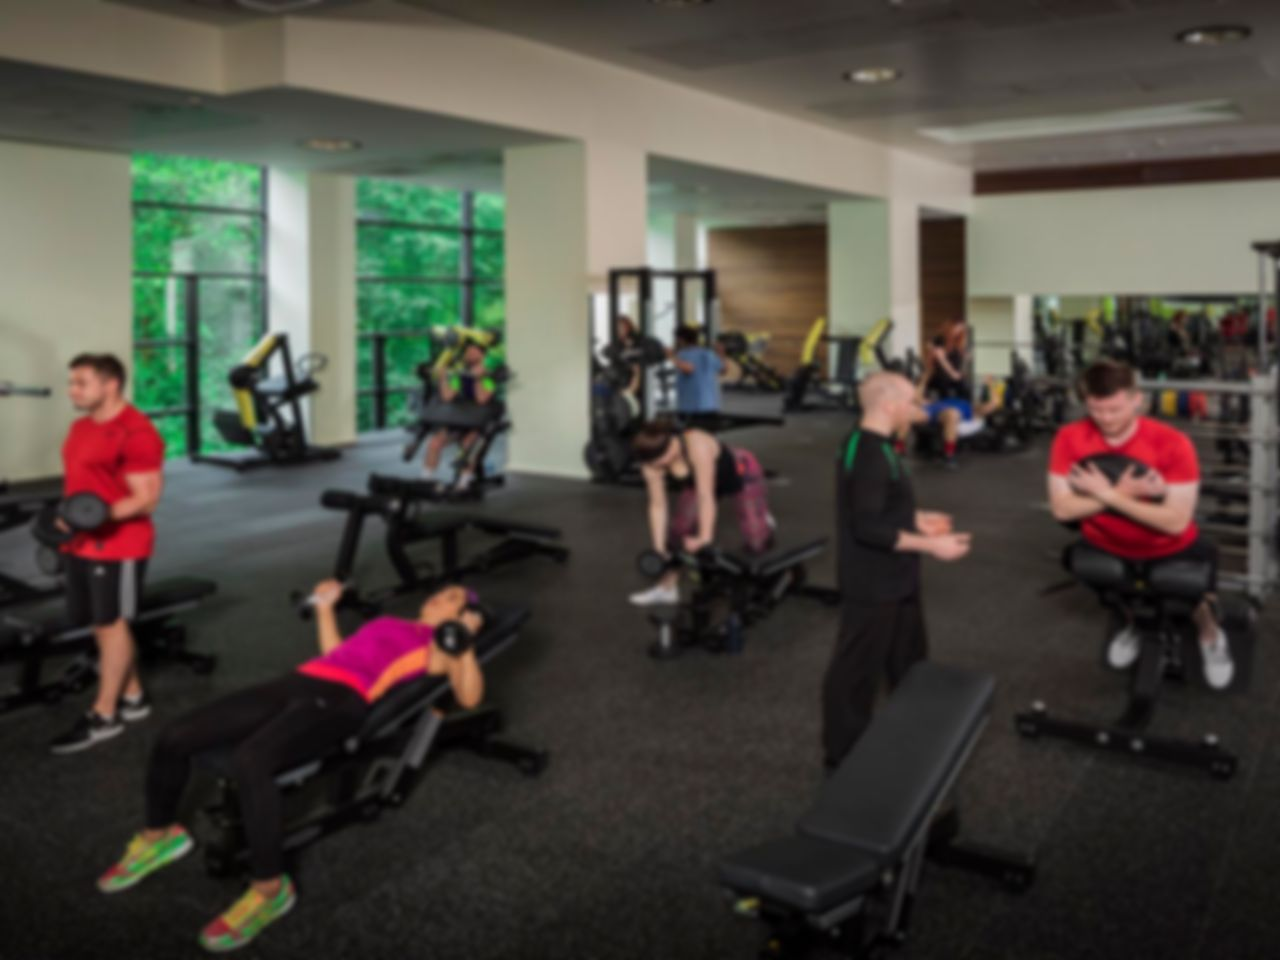 Nuffield Health Edinburgh Fountain Park Fitness Wellbeing Gym Flexible Gym Passes Eh11